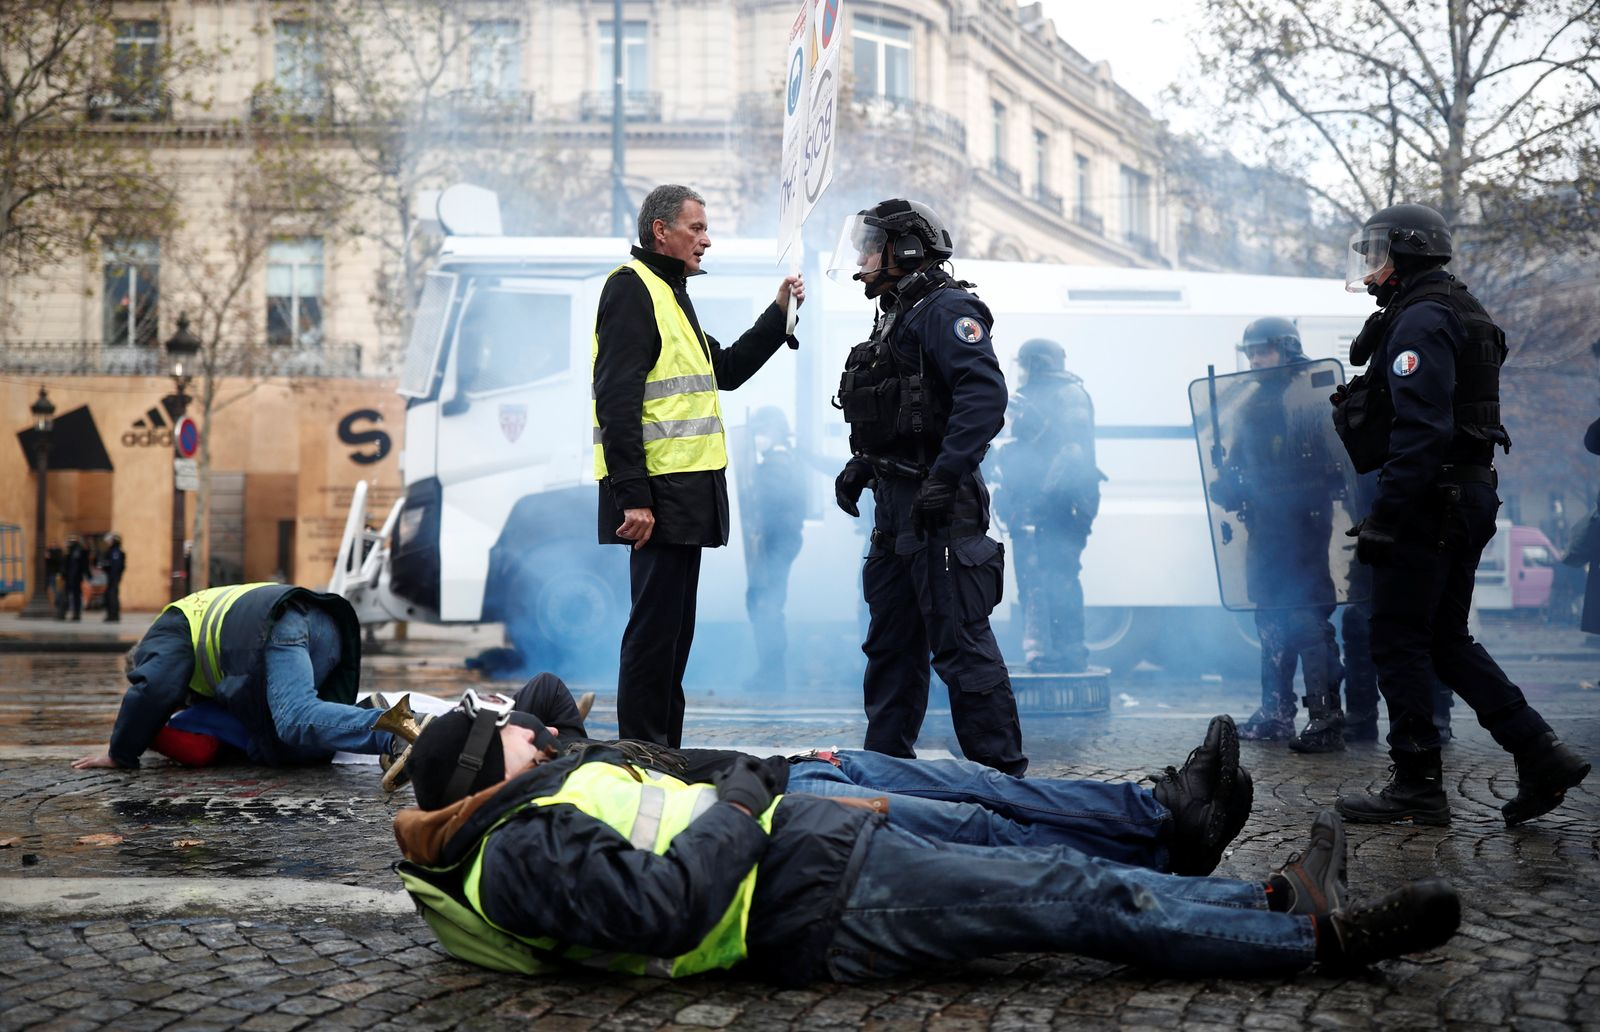 A protester wearing yellow vest, a symbol of a French drivers' protest against higher fuel prices, talks to the police officer during clashes on the Champs-Elysees in Paris